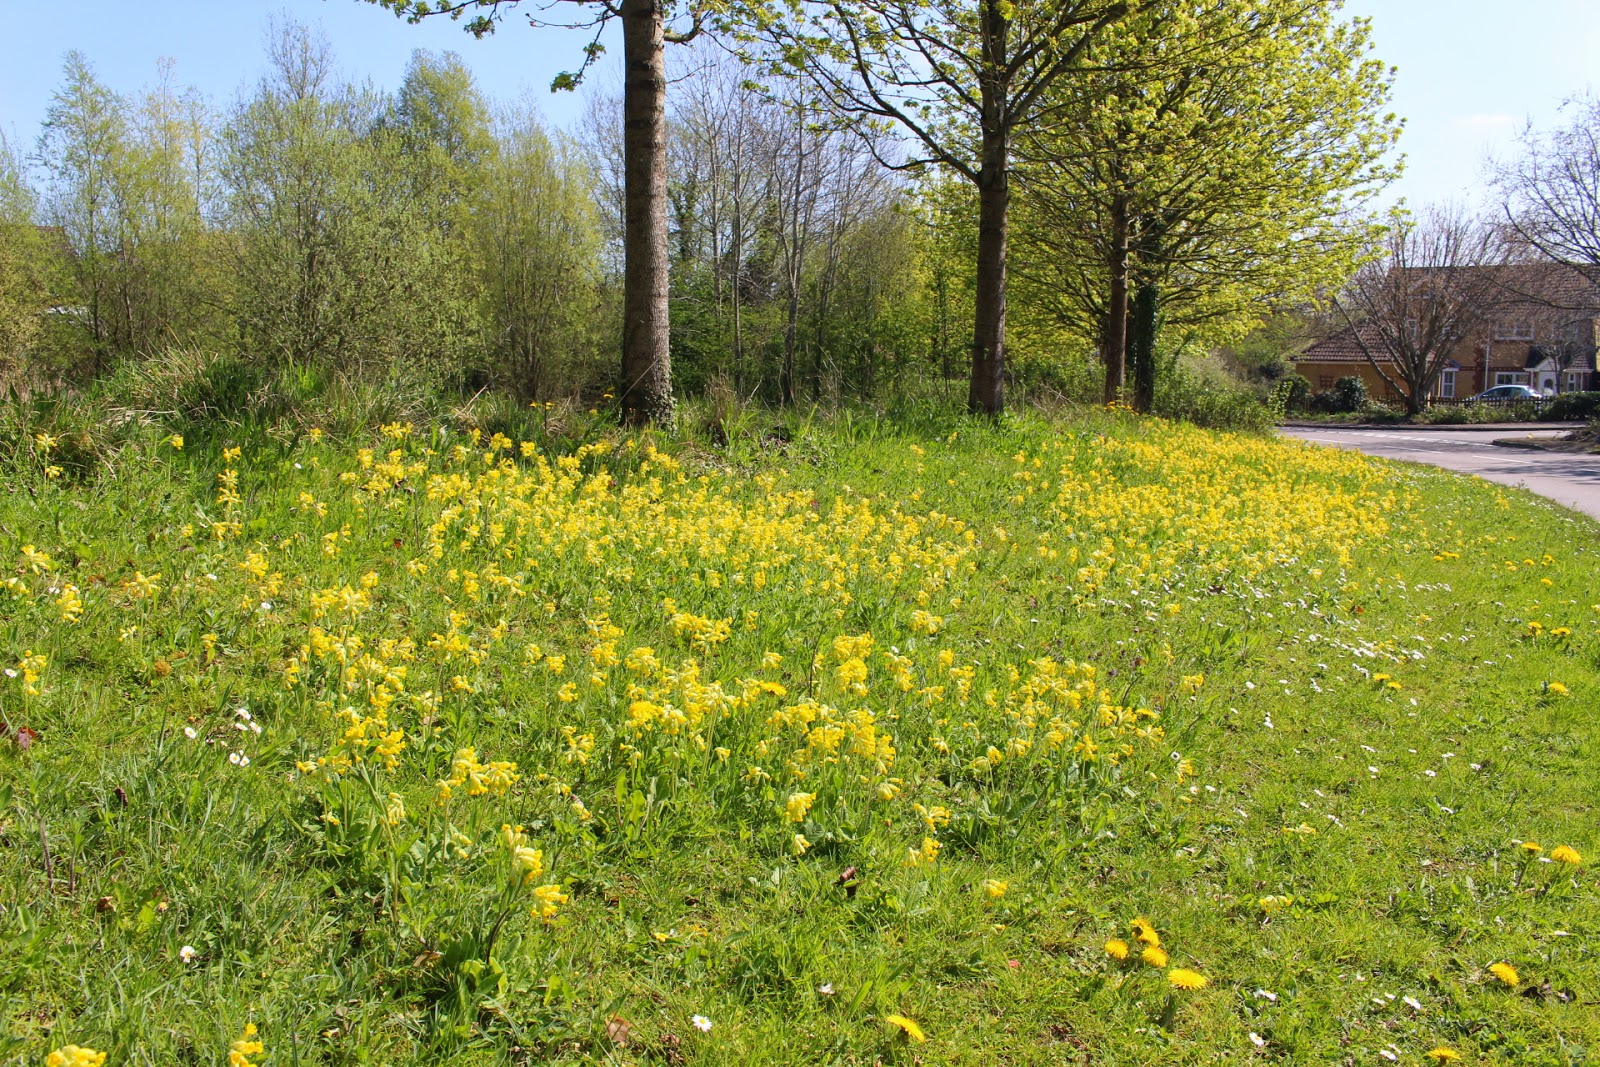 The sheet of cowslips which greet us at the entrance of our estate